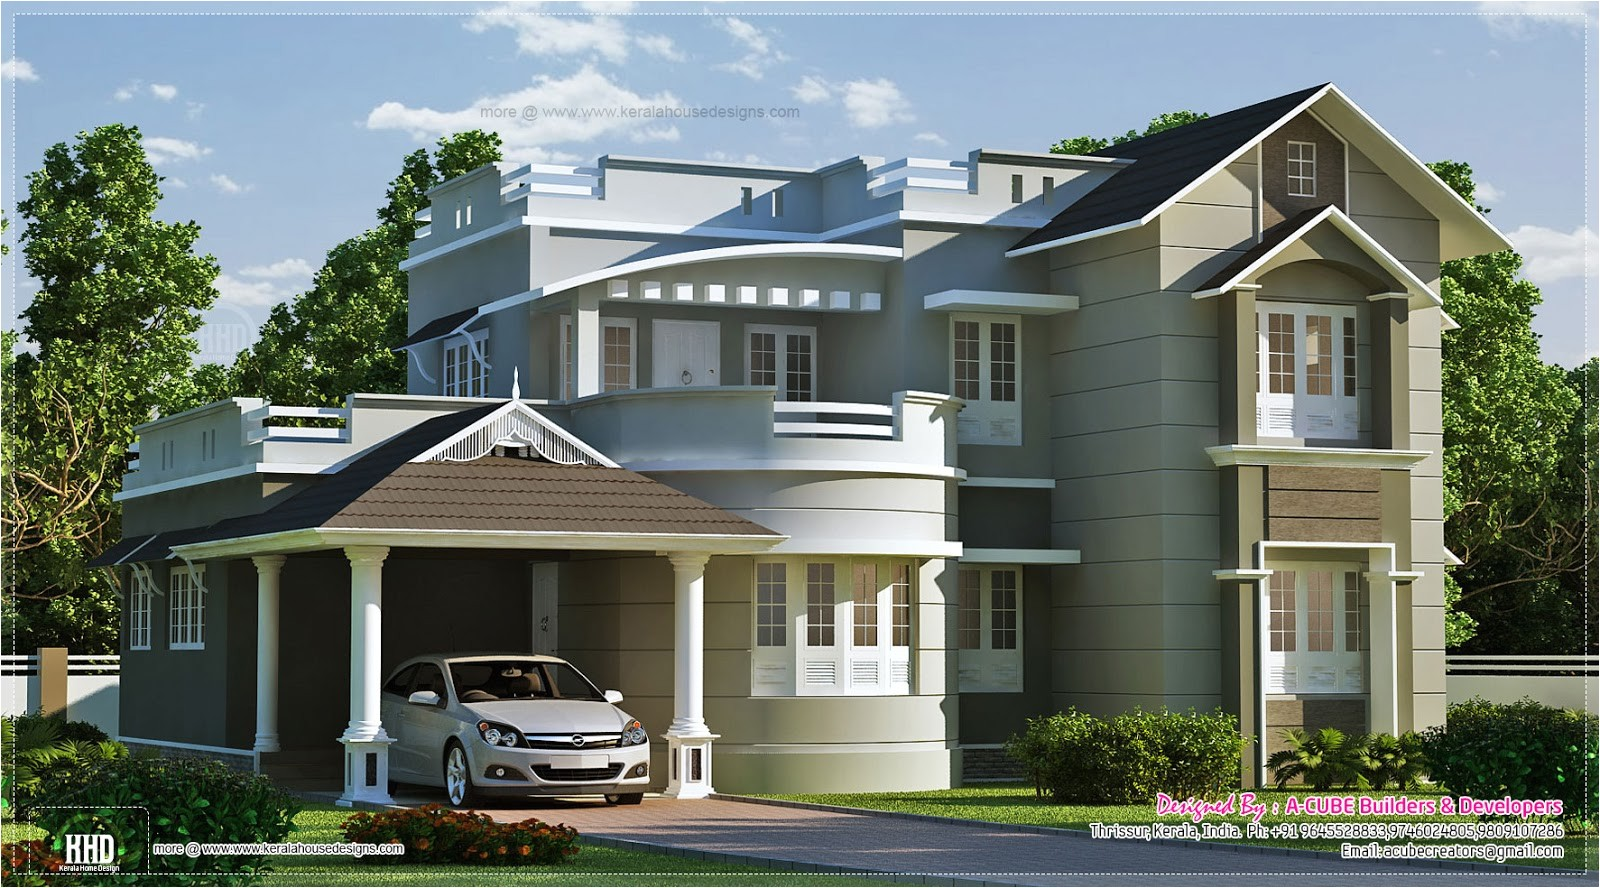 House Construction Plans Homes New Home Design